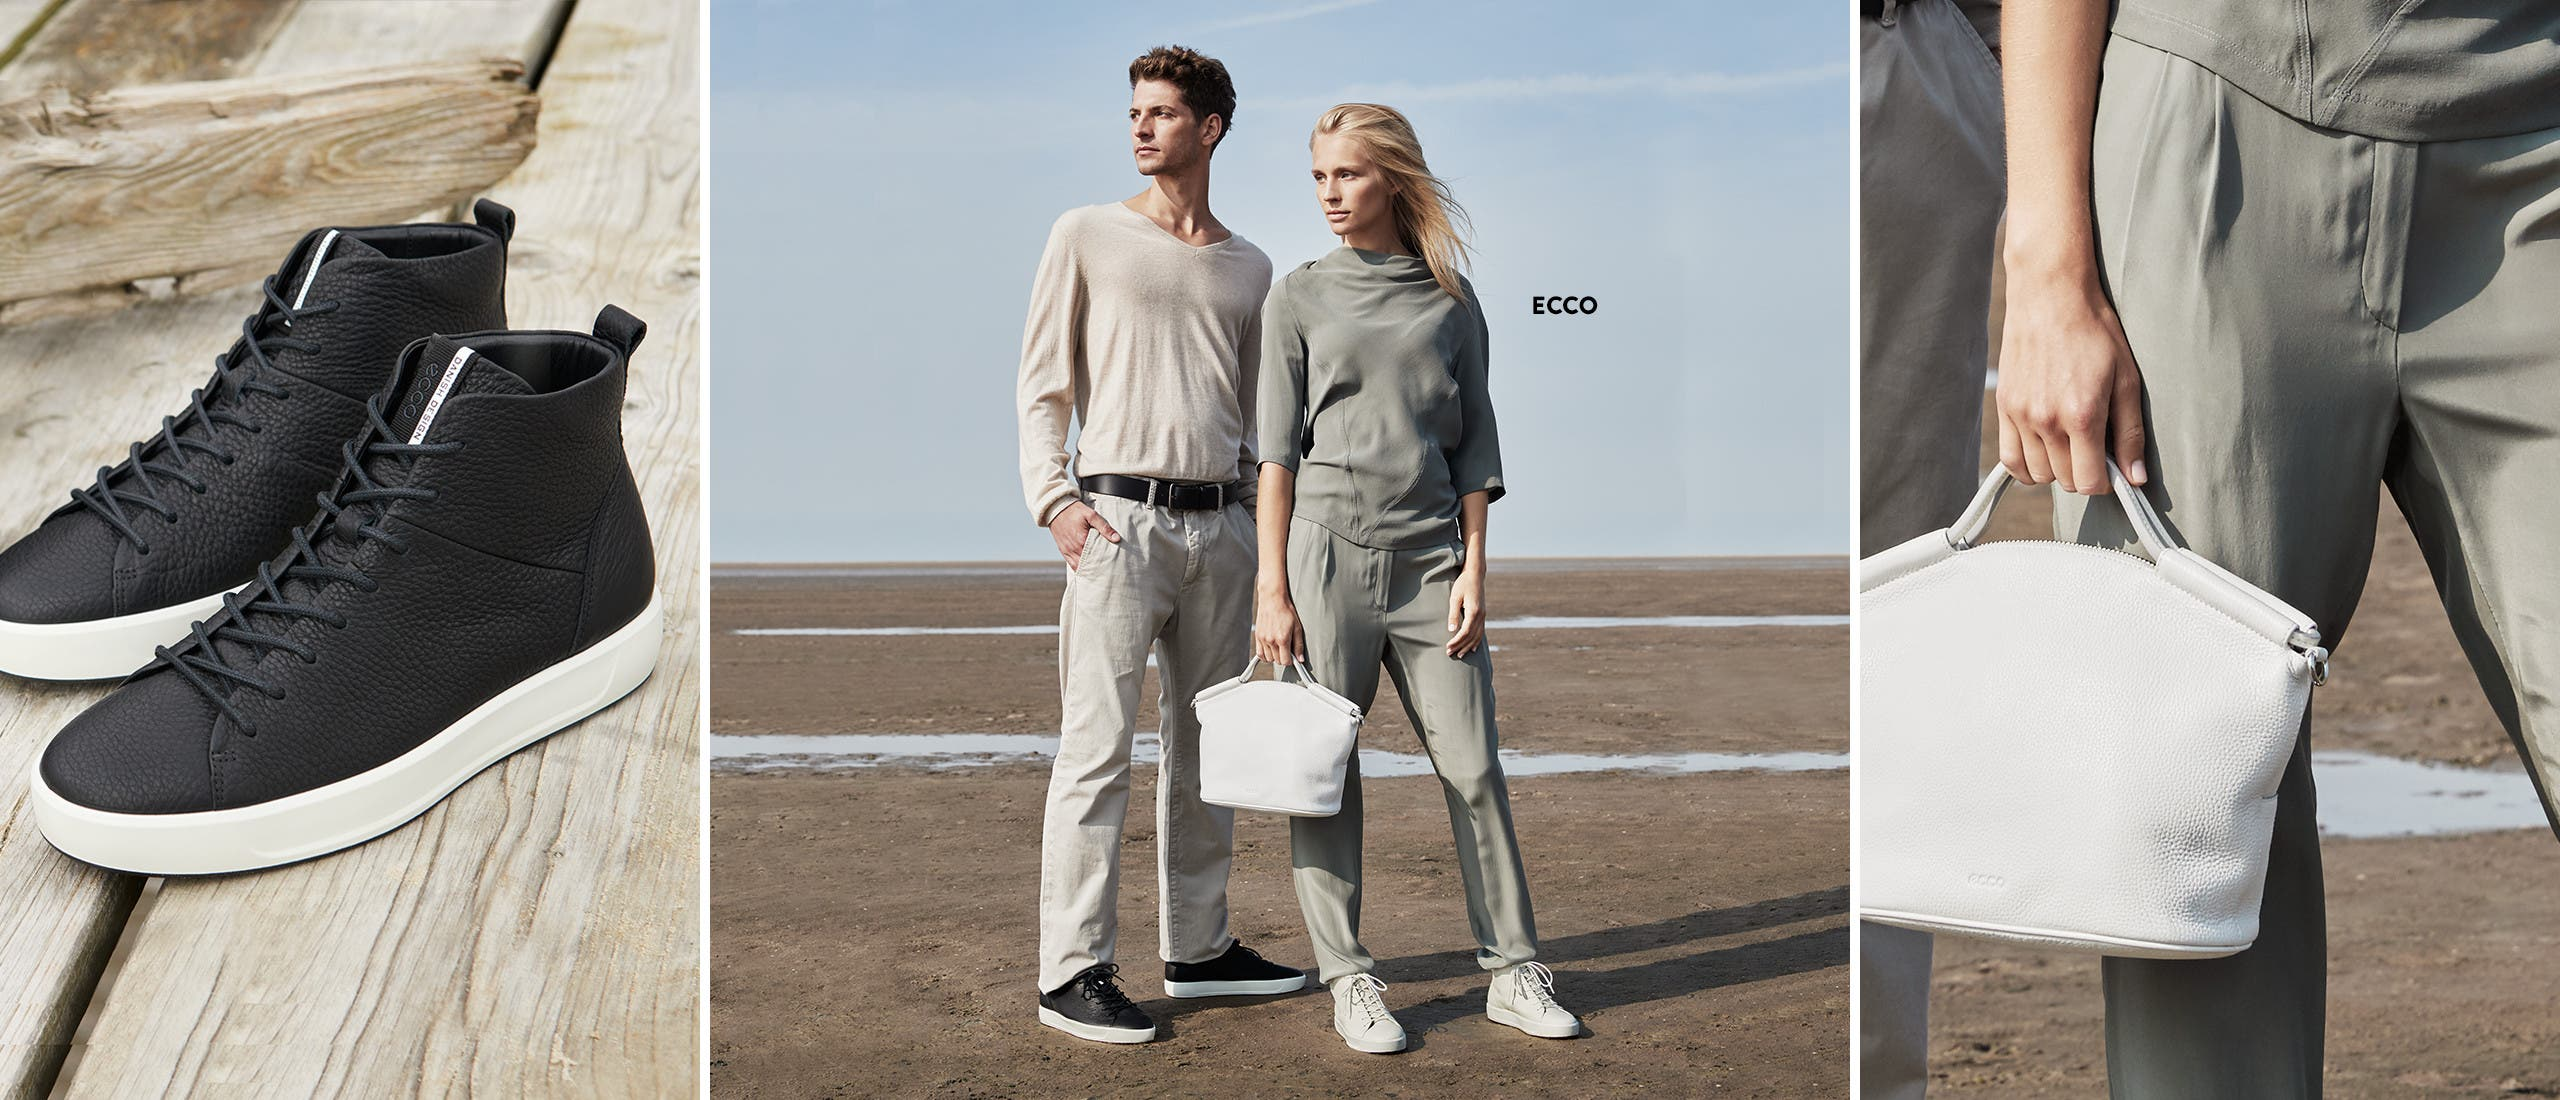 ECCO for women and men.